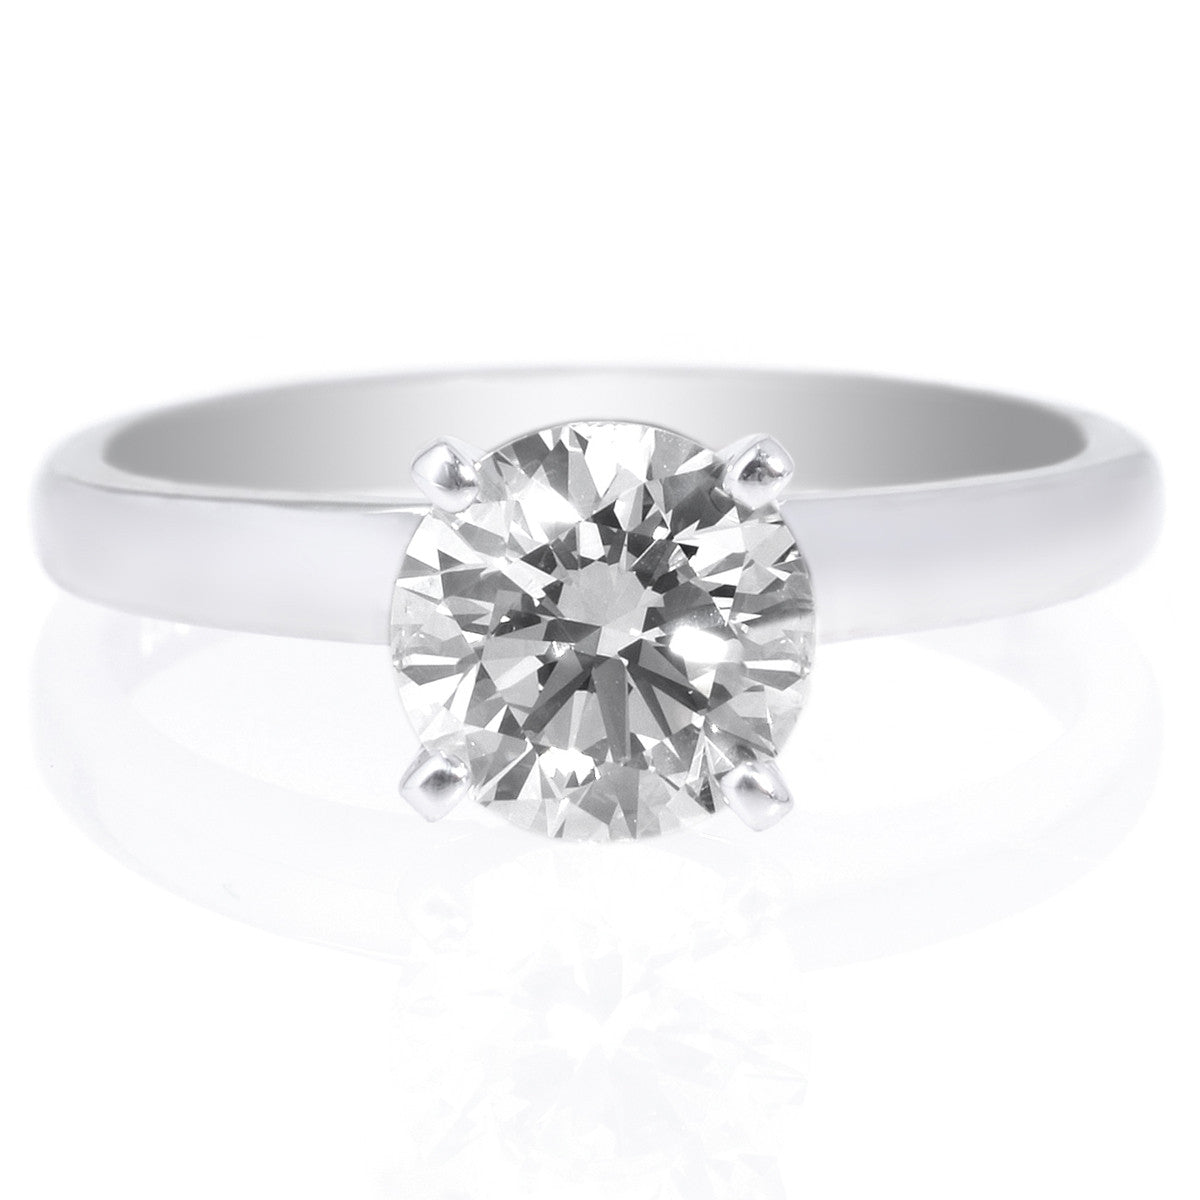 Platinum Four-Prong Solitaire Engagement Ring Setting